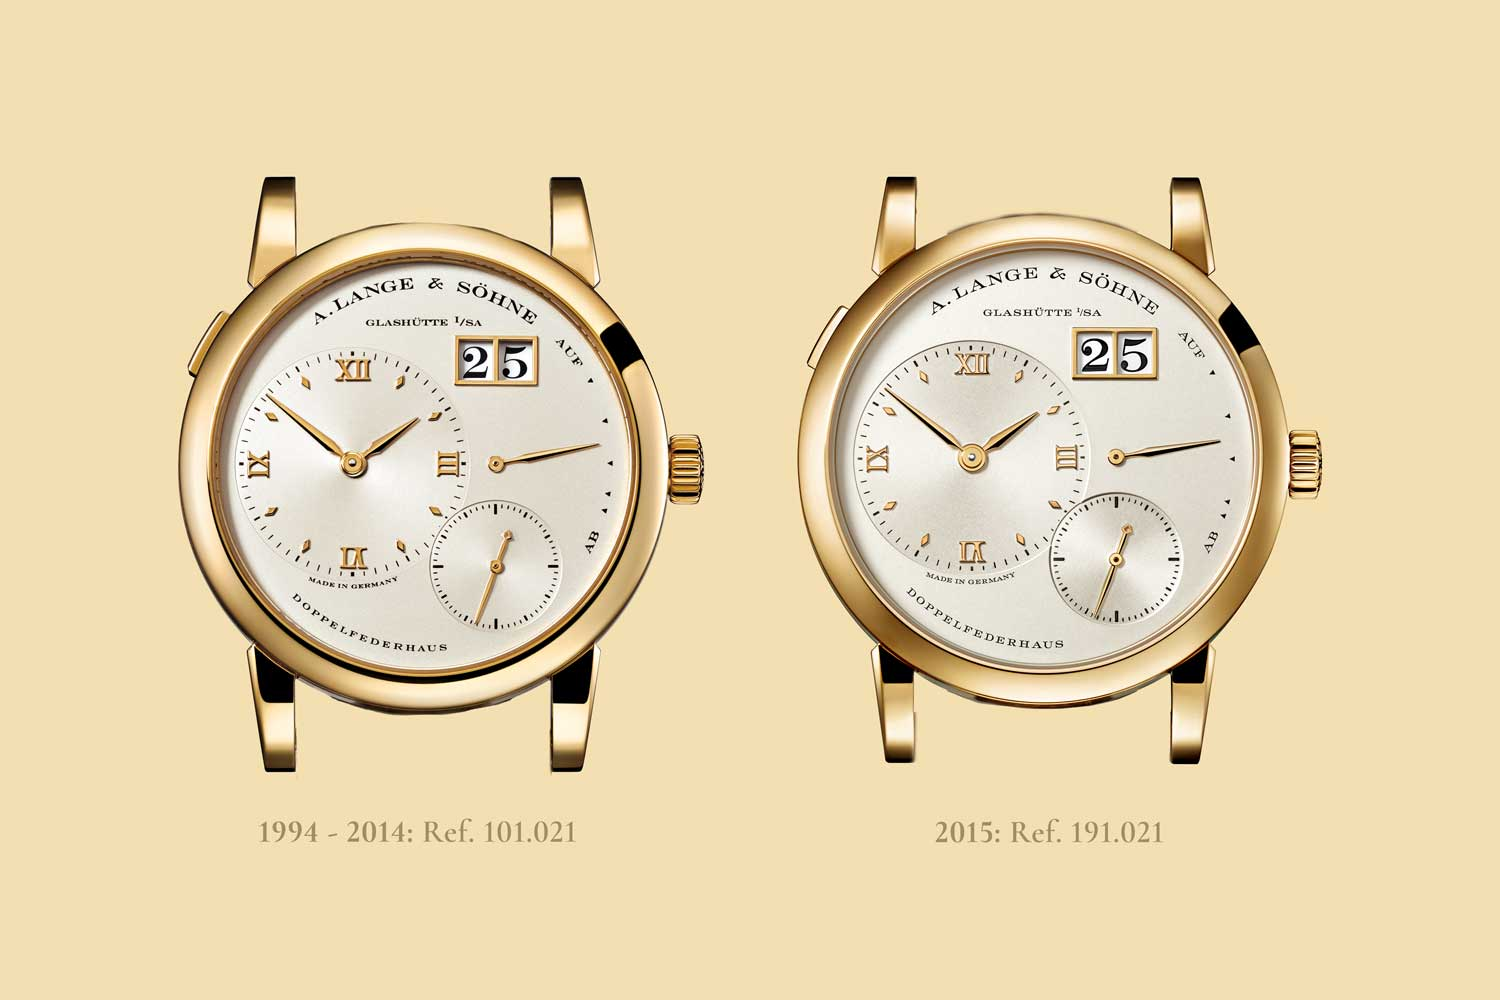 With the 2015, overhaul, changes made to the dial were painstaking refinements which are difficult to point out without having the the watches from the two generations side-by-side